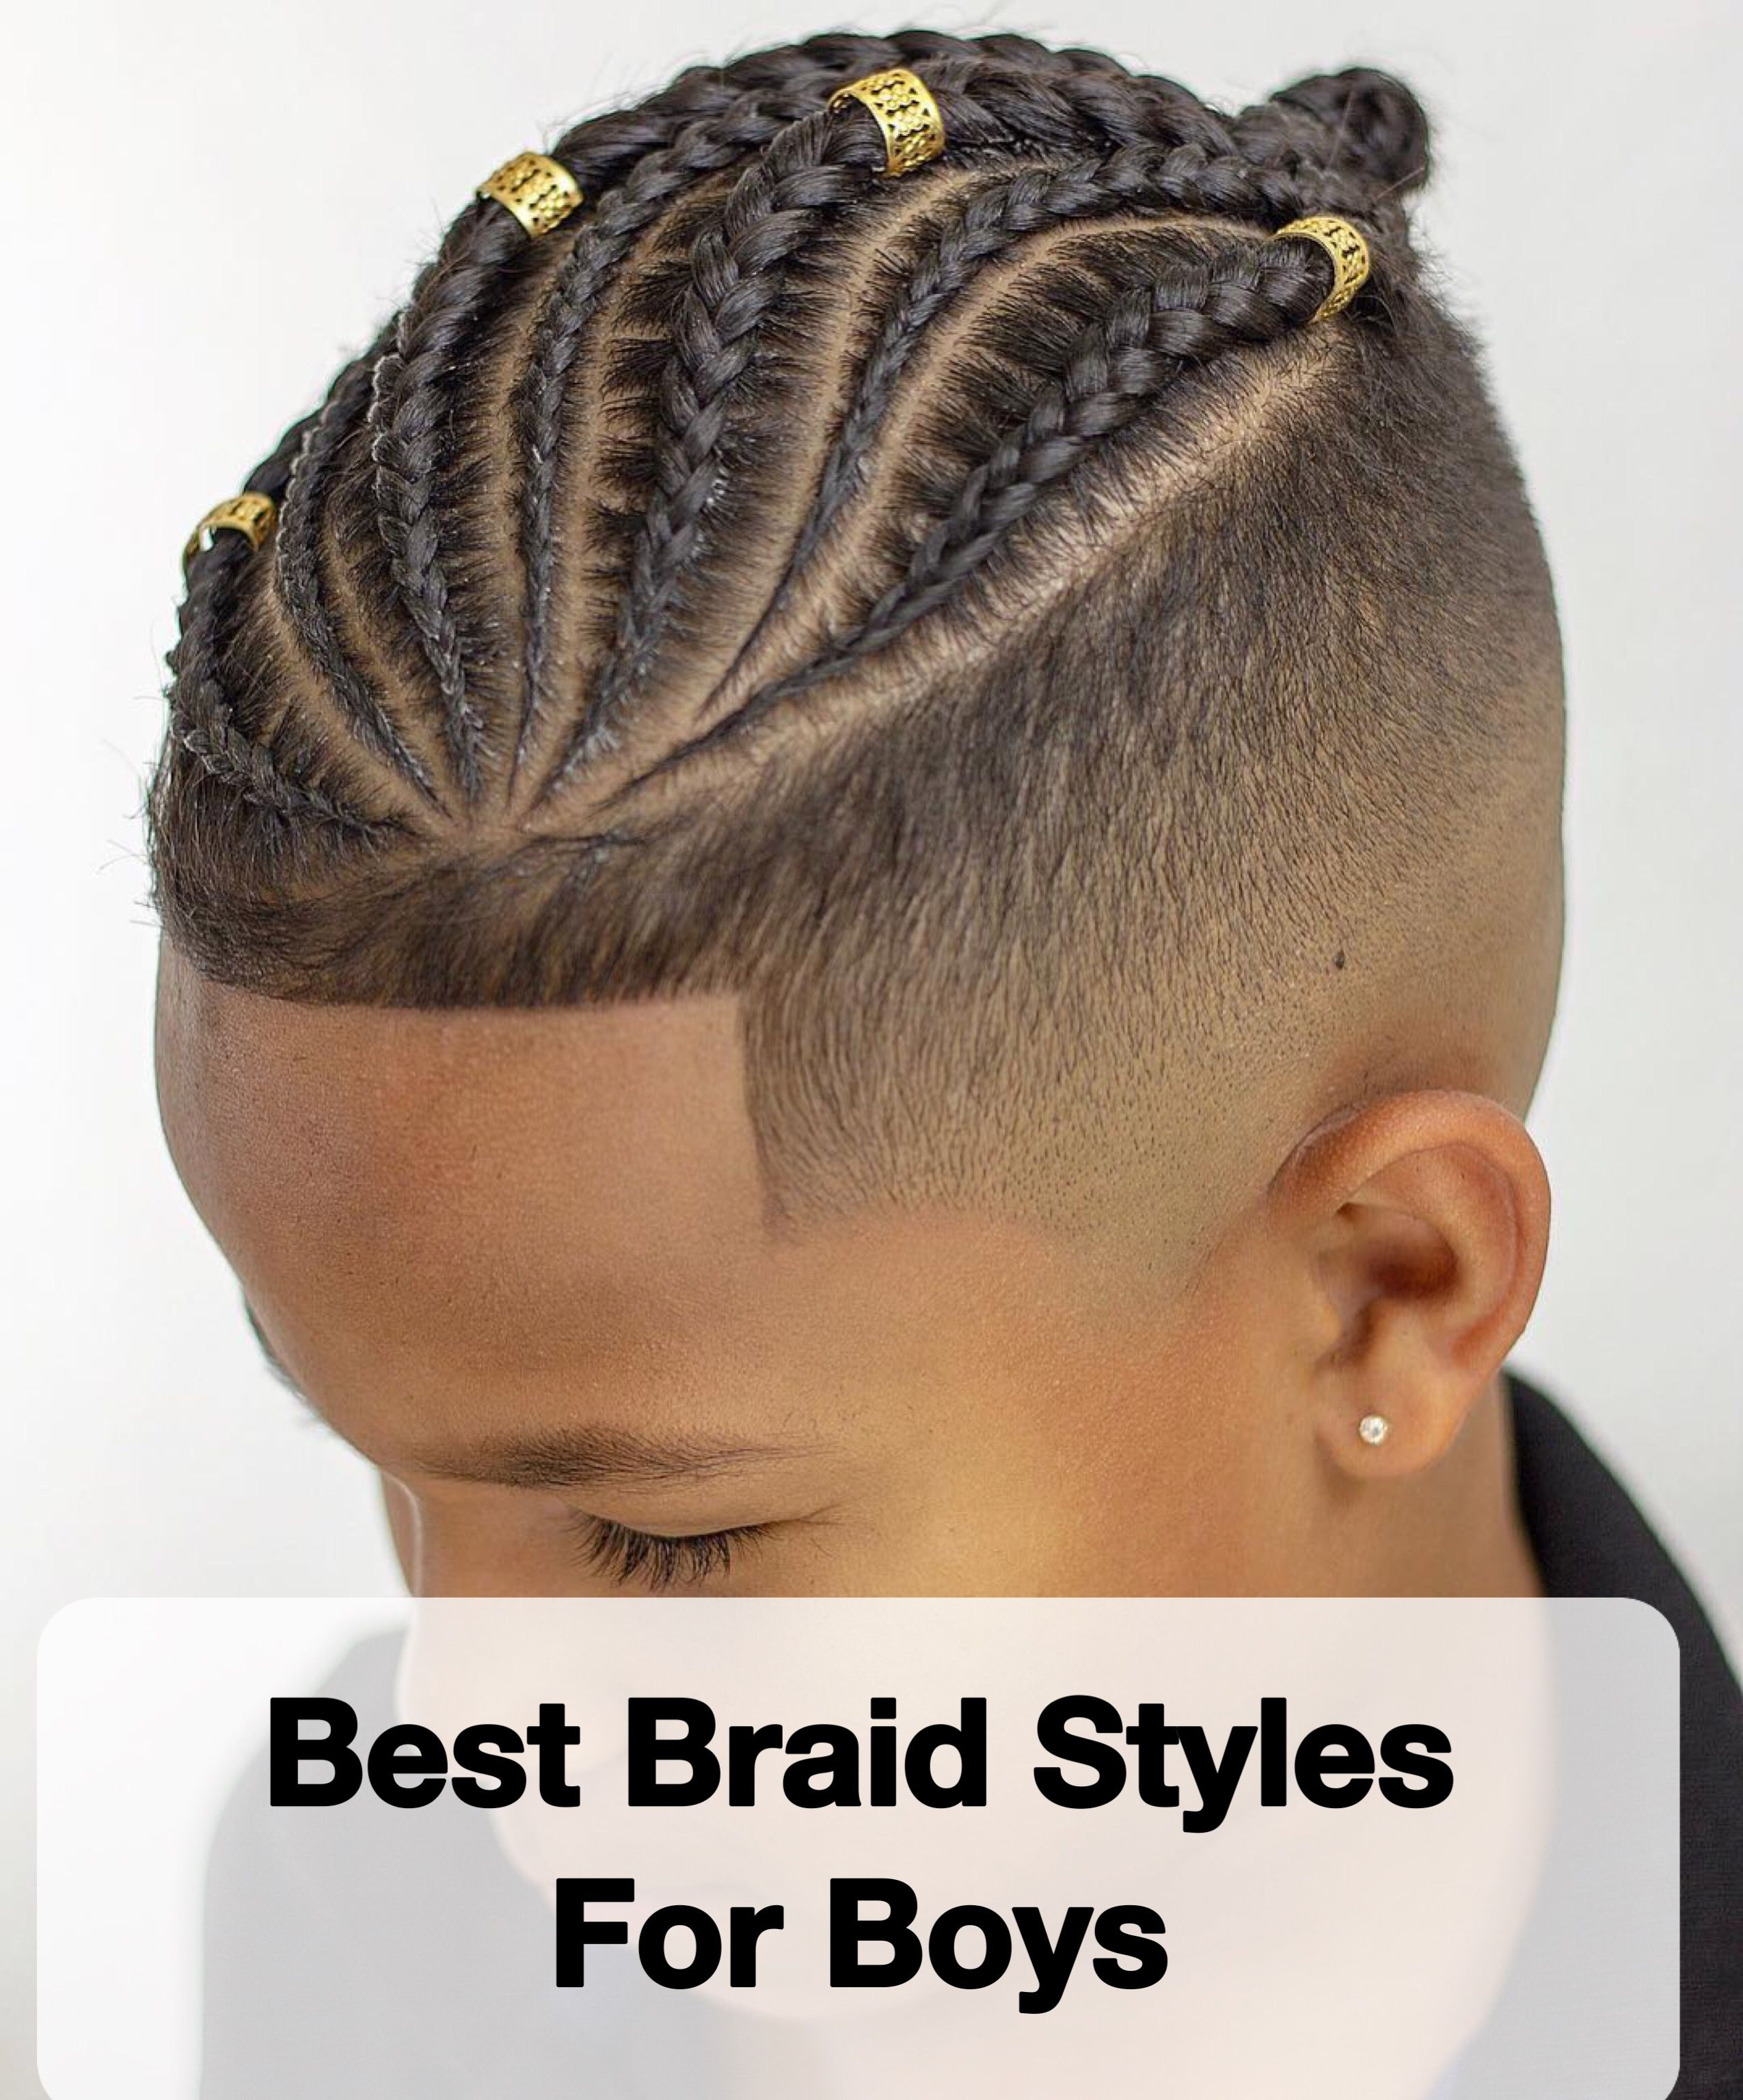 Braids For Kids 15 Amazing Braid Styles For Boys Men S Hairstyles Braids For Boys Boy Braids Hairstyles Mens Braids Hairstyles